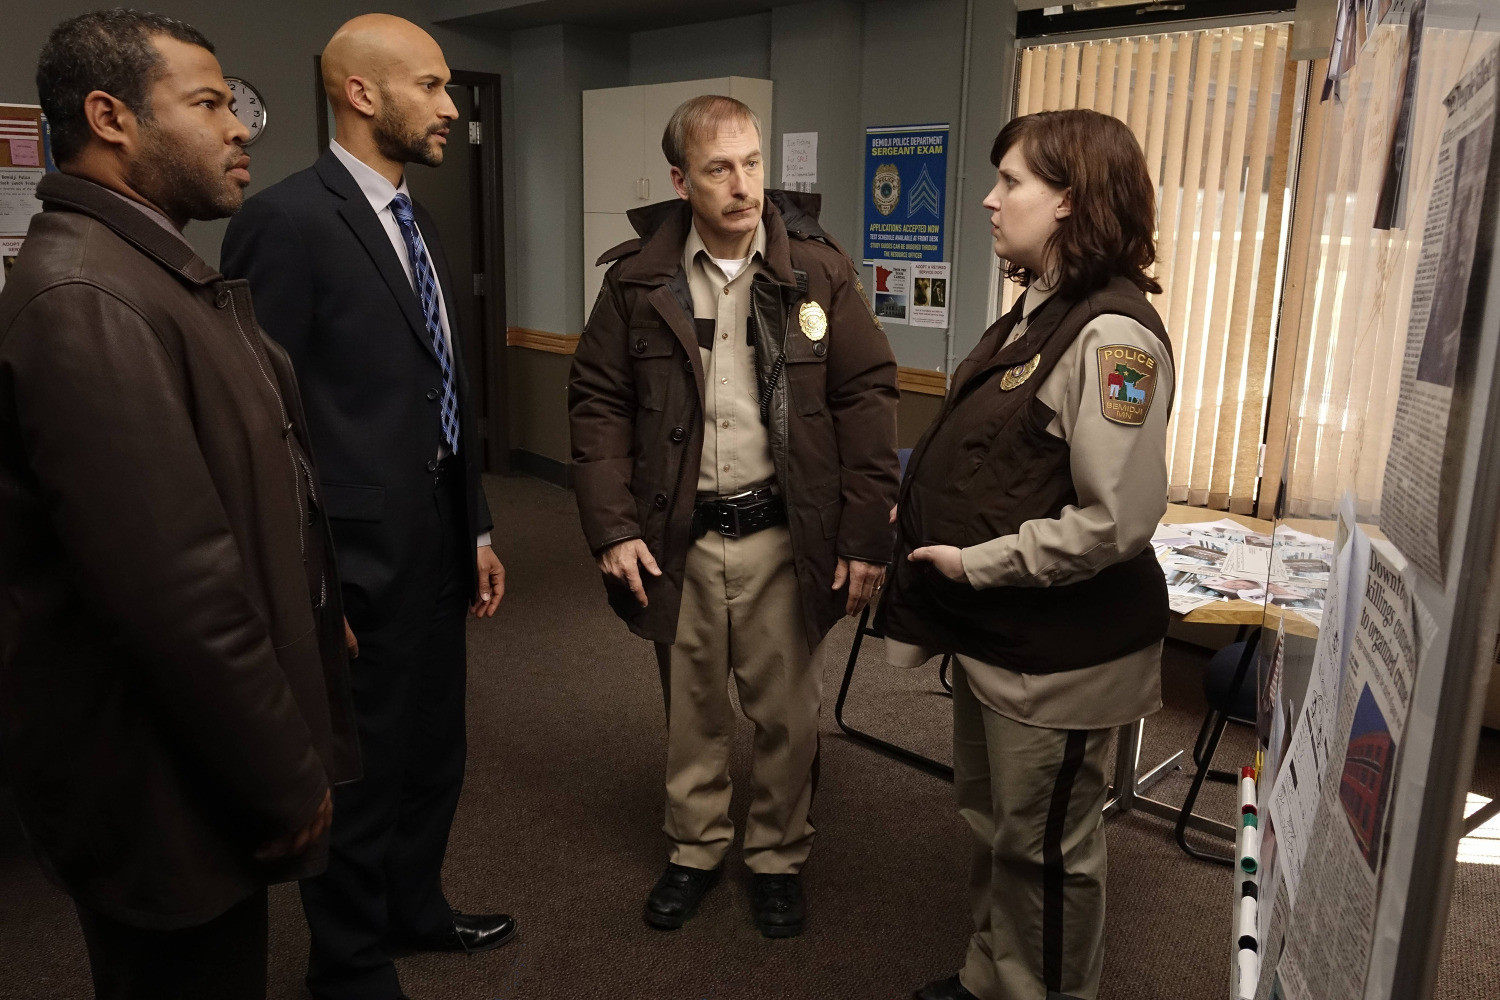 Fargo: Bob Odenkirk, Allison Tolman, Keegan-Michael Key, Jordan Peele nell'episodio A Fox, a Rabbit and a Cabbage